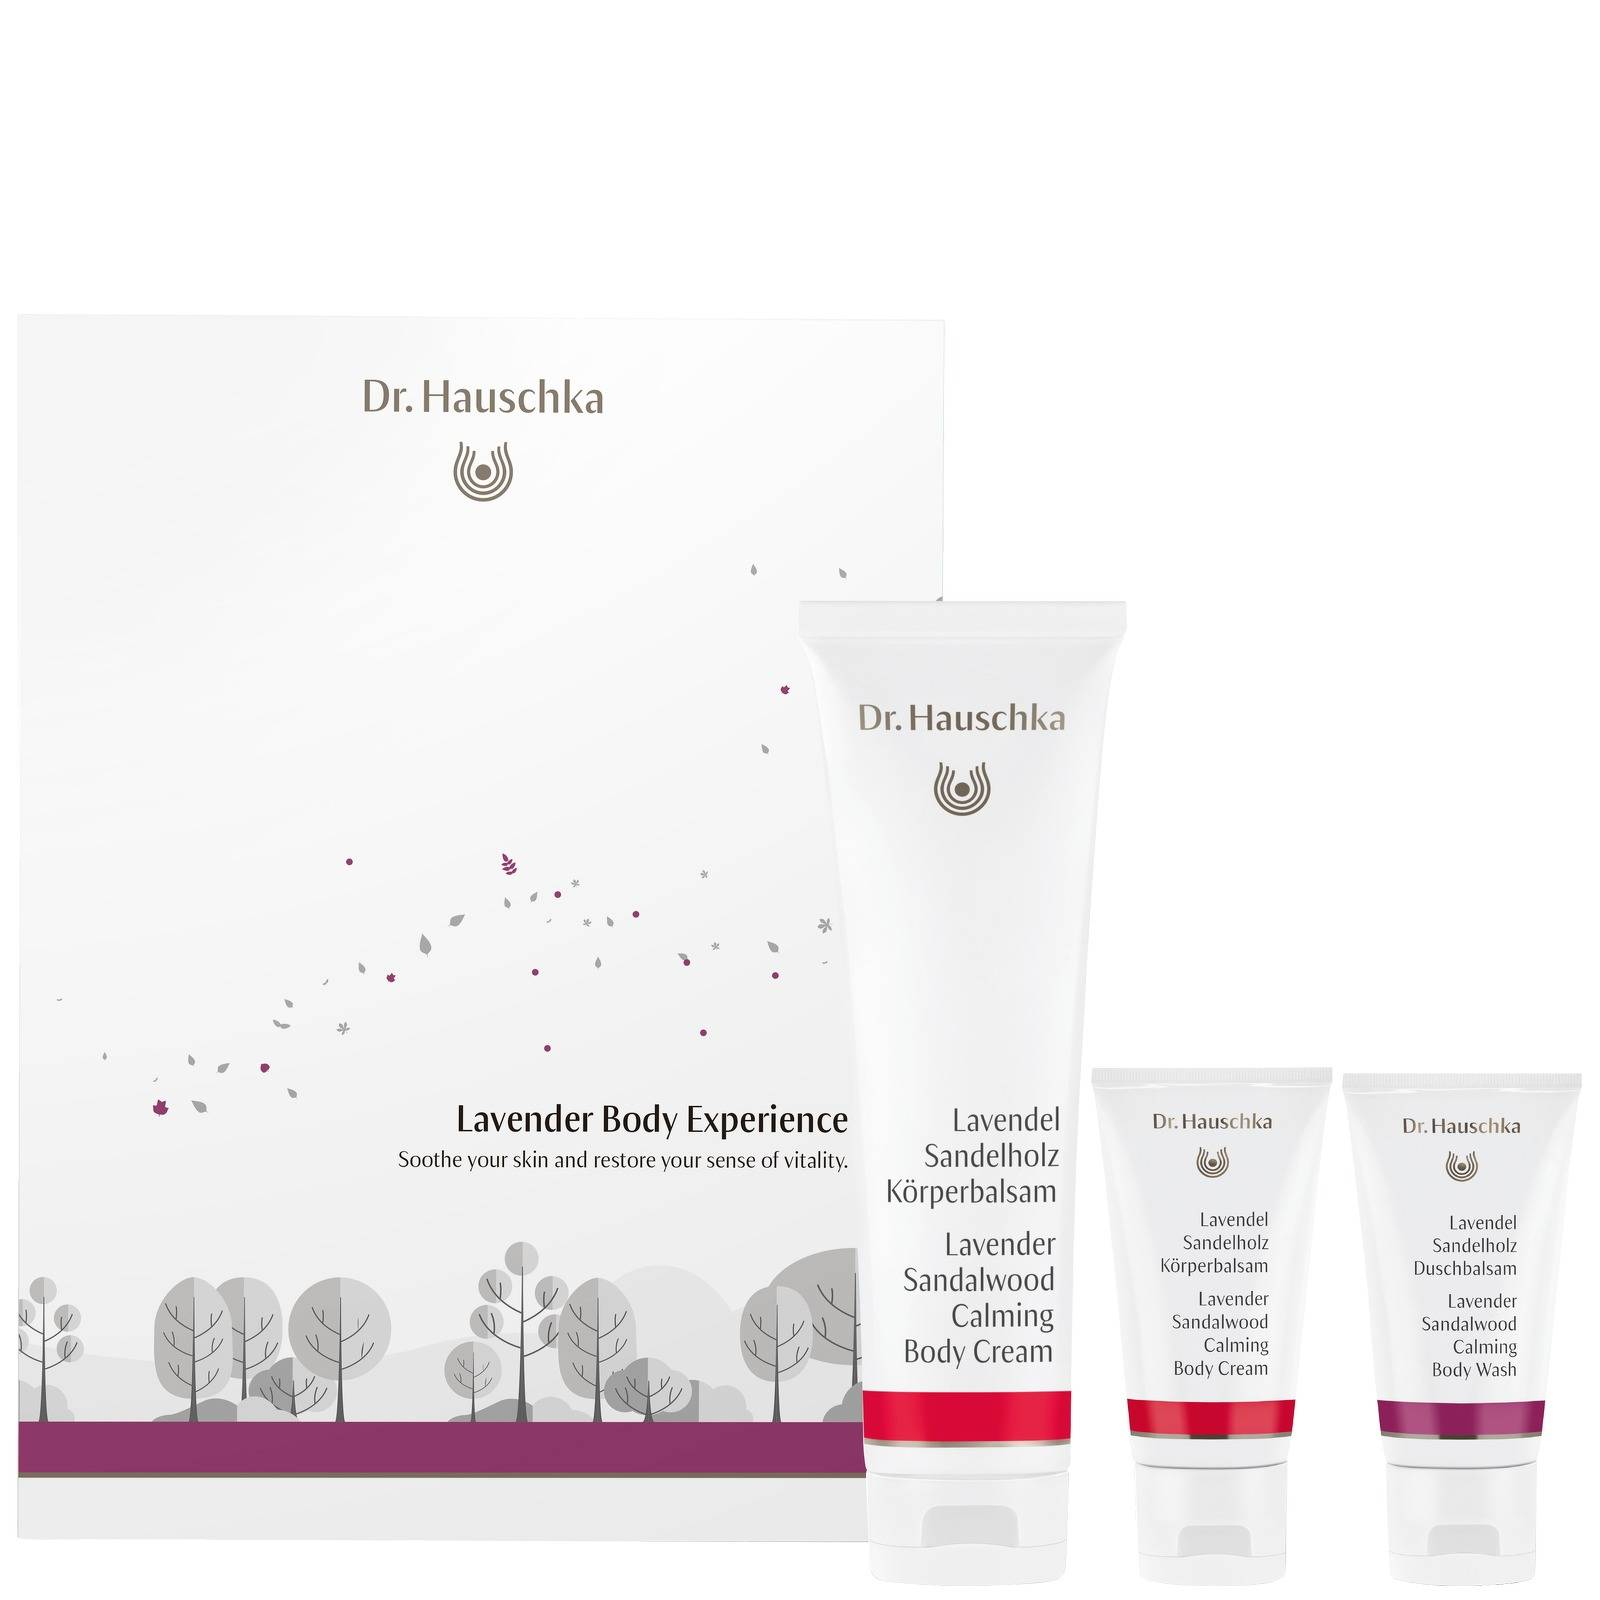 Dr. Hauschka - Gifts & Accessories Lavender Body Experience for Women